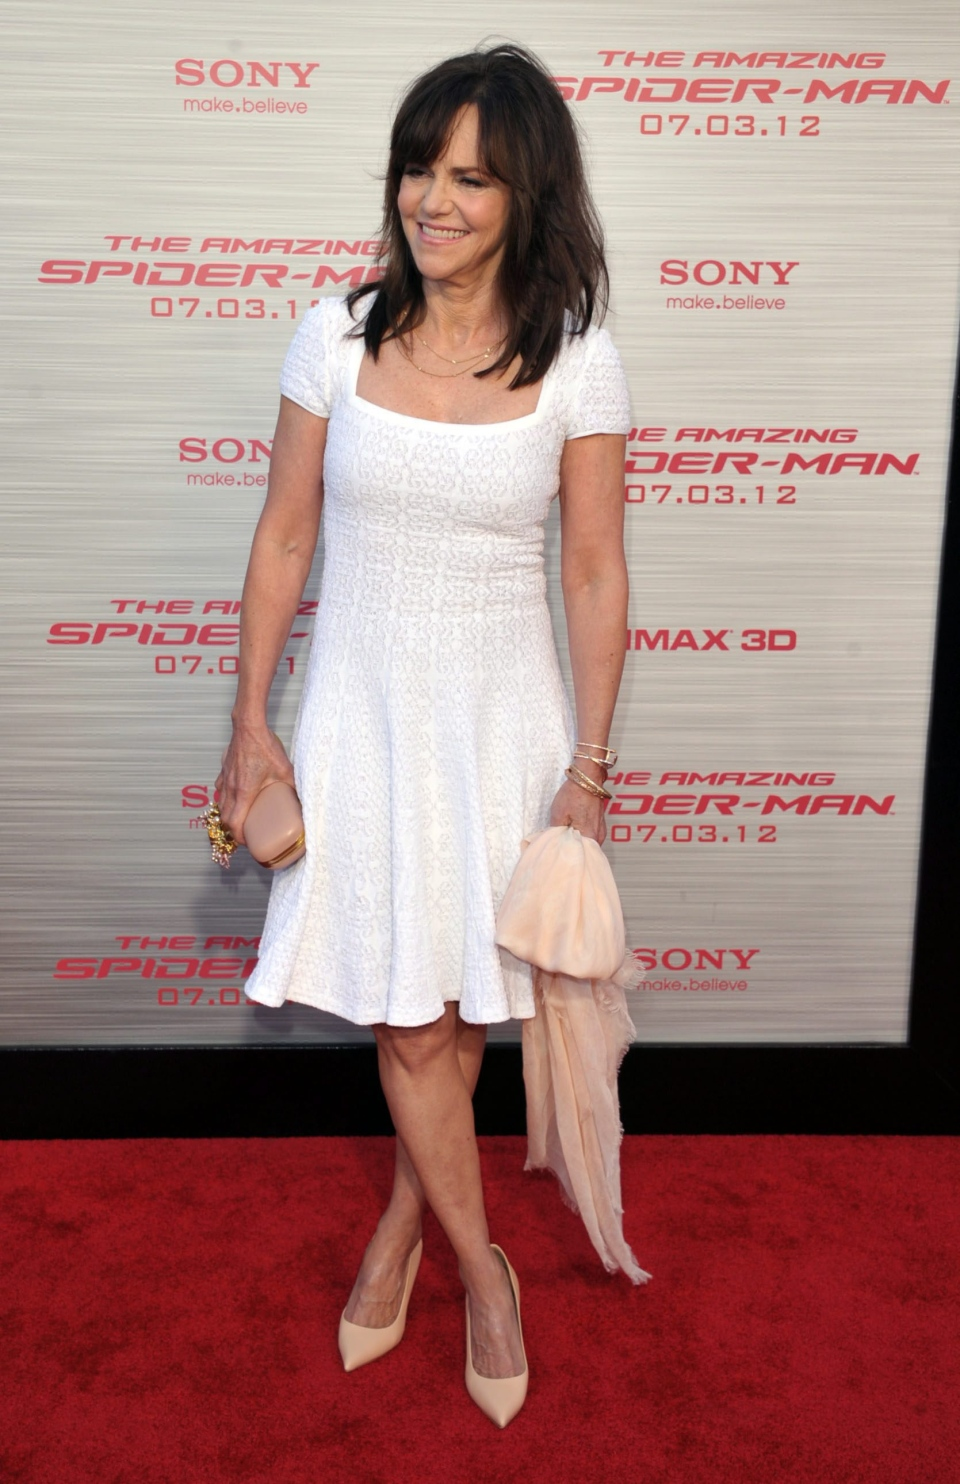 Sally Field attends the world premiere of 'The Amazing Spider-Man' at the Regency Village Theatre in Los Angeles on Thursday, June 28, 2012. (AP / John Shearer / Invision)